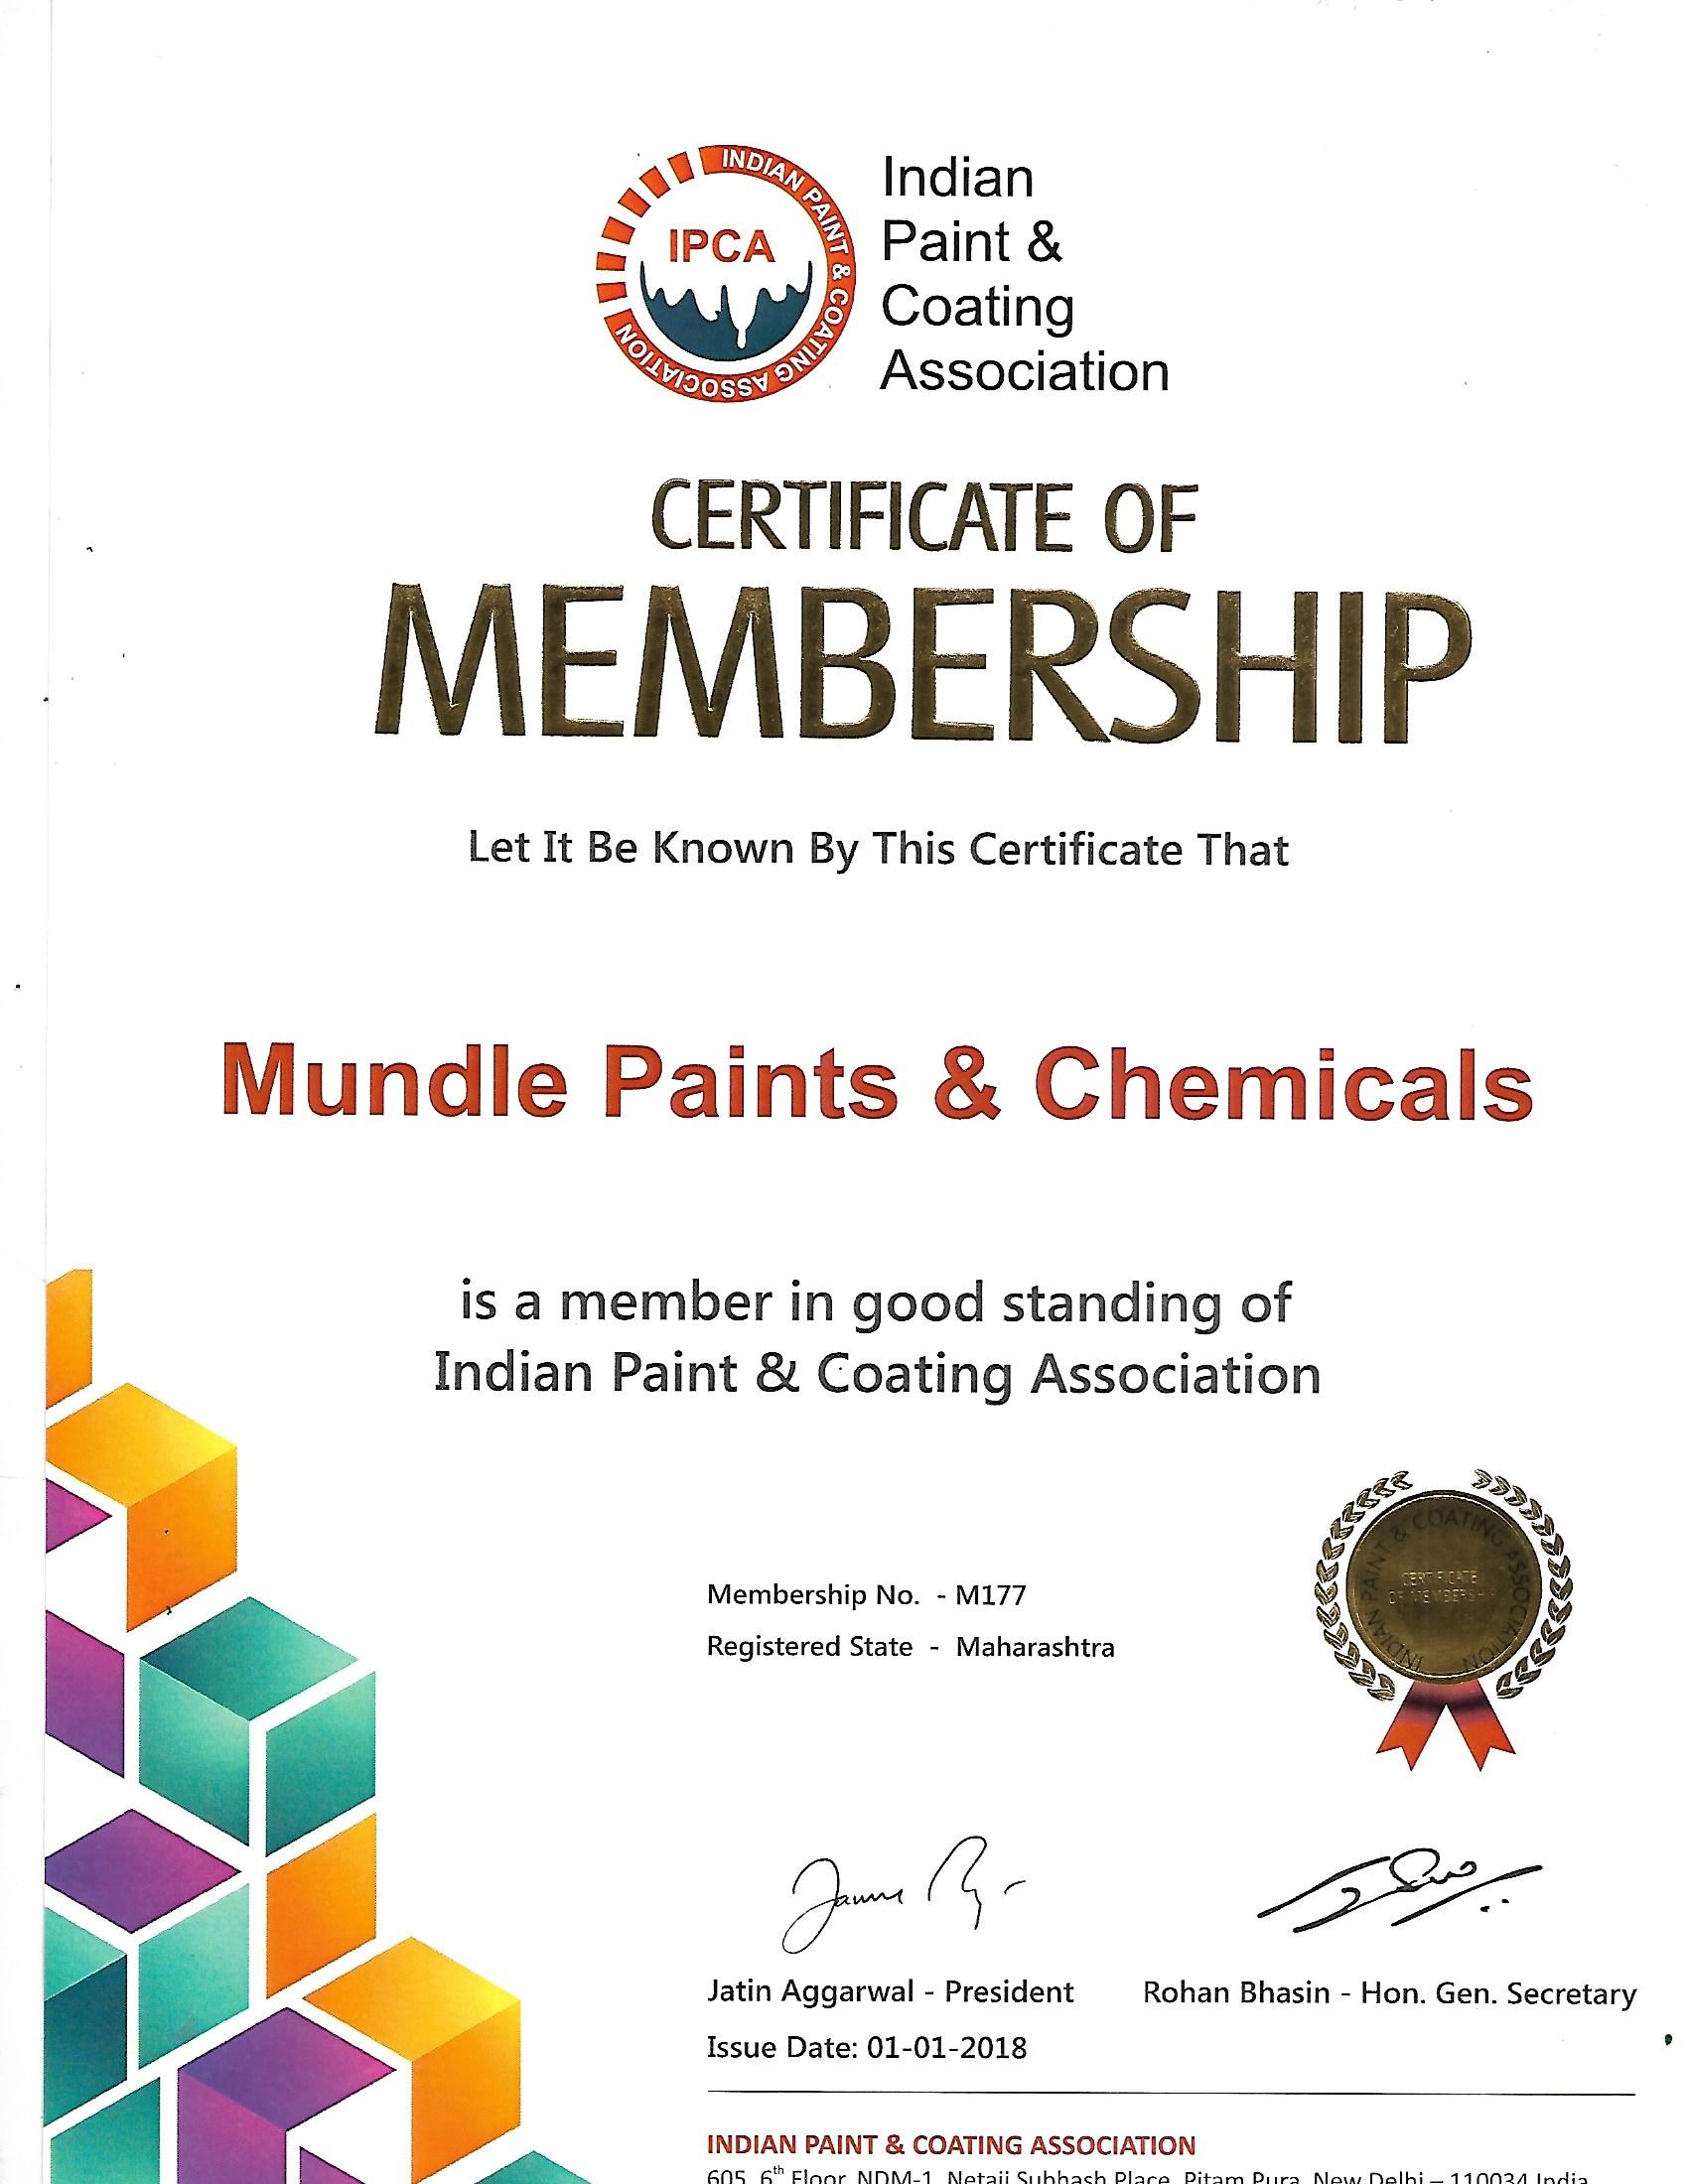 Articles: Certification IPCA for MUNDLE PAINTS & CHEMICALS